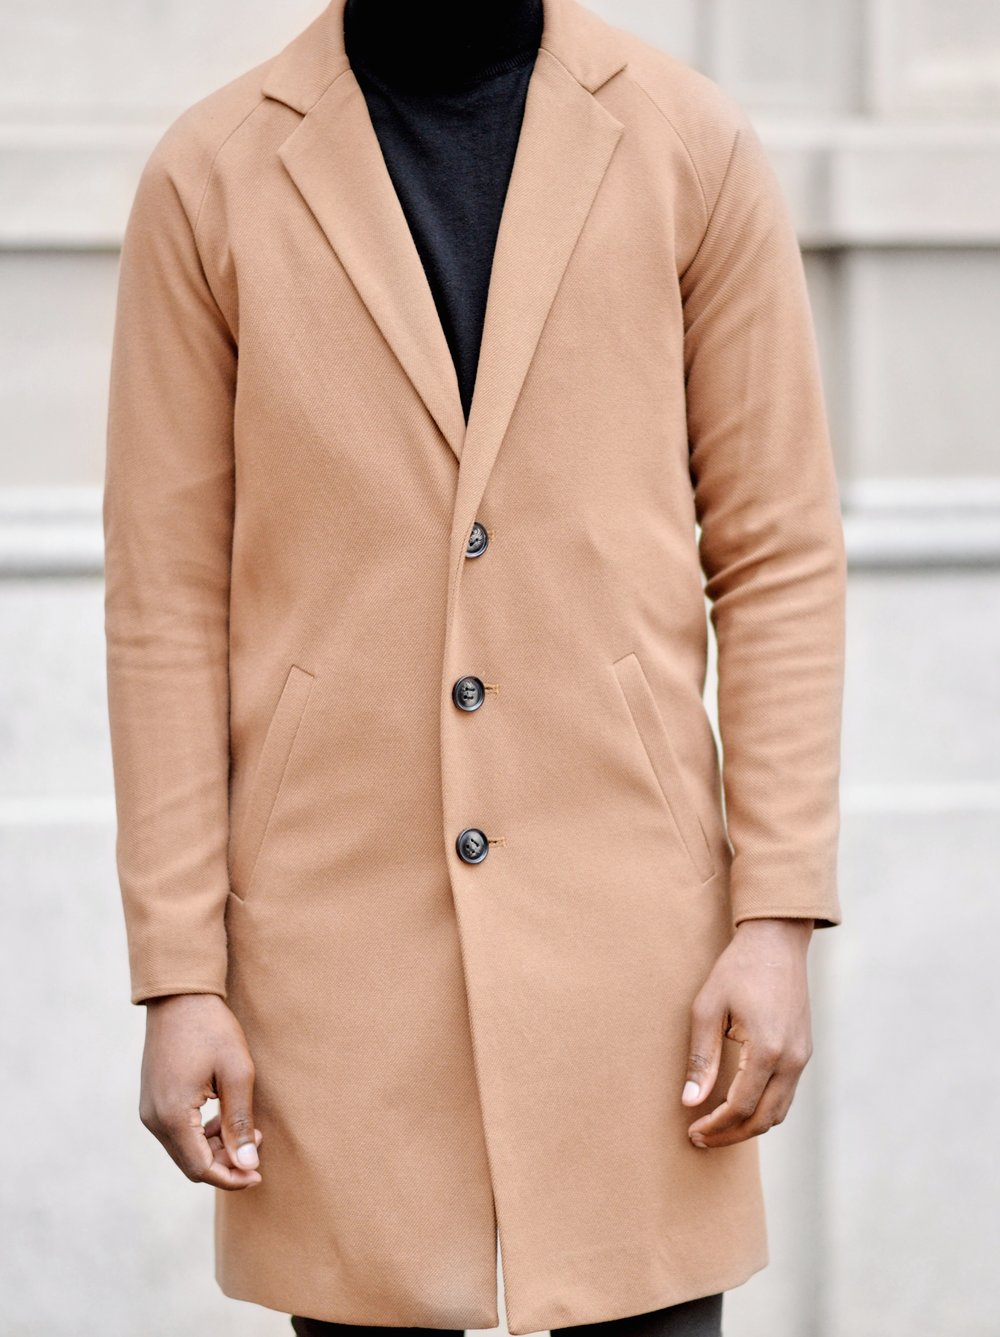 Tan overcoat and turtleneck